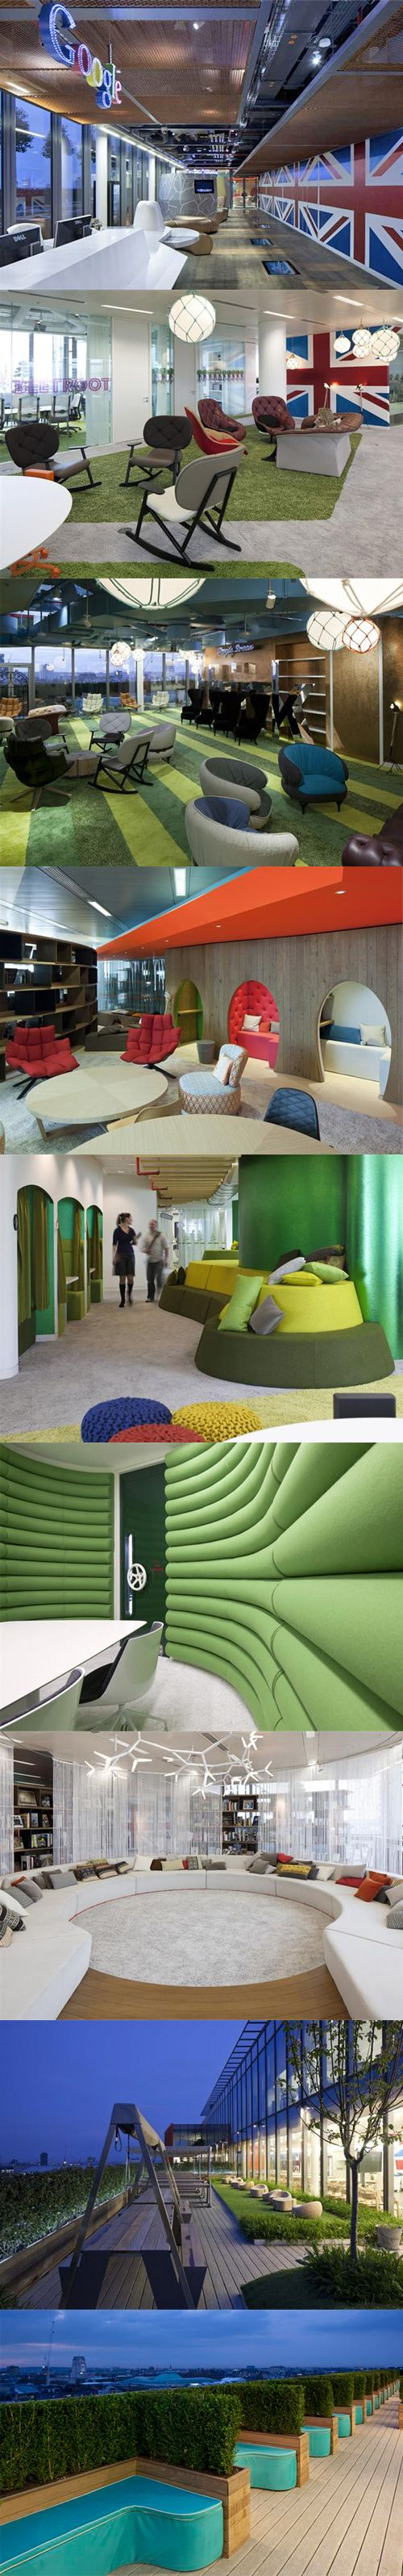 offices google office stockholm 18 google officestockholm google office 1000 images about google offices on pinterest branching google tel aviv office